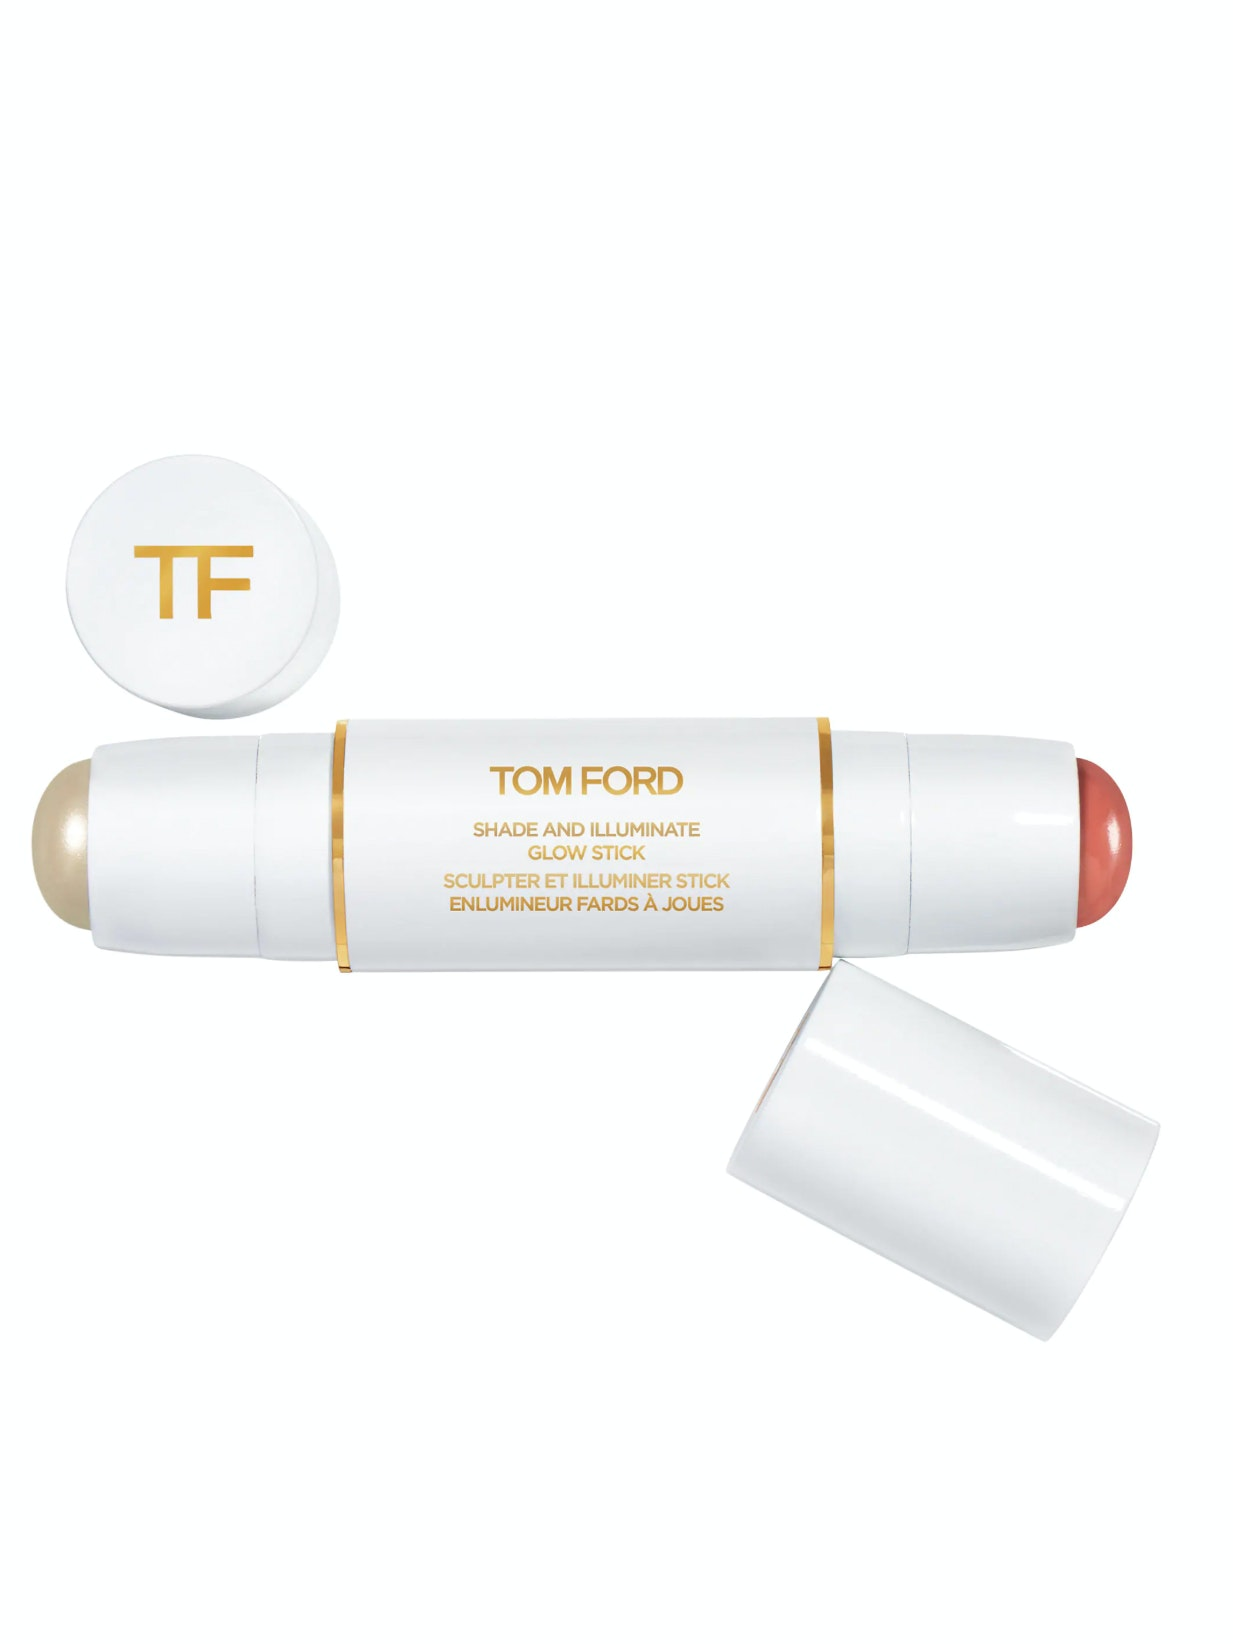 Tom Ford Shade and Illuminate Glow Stick in Soleil Neige